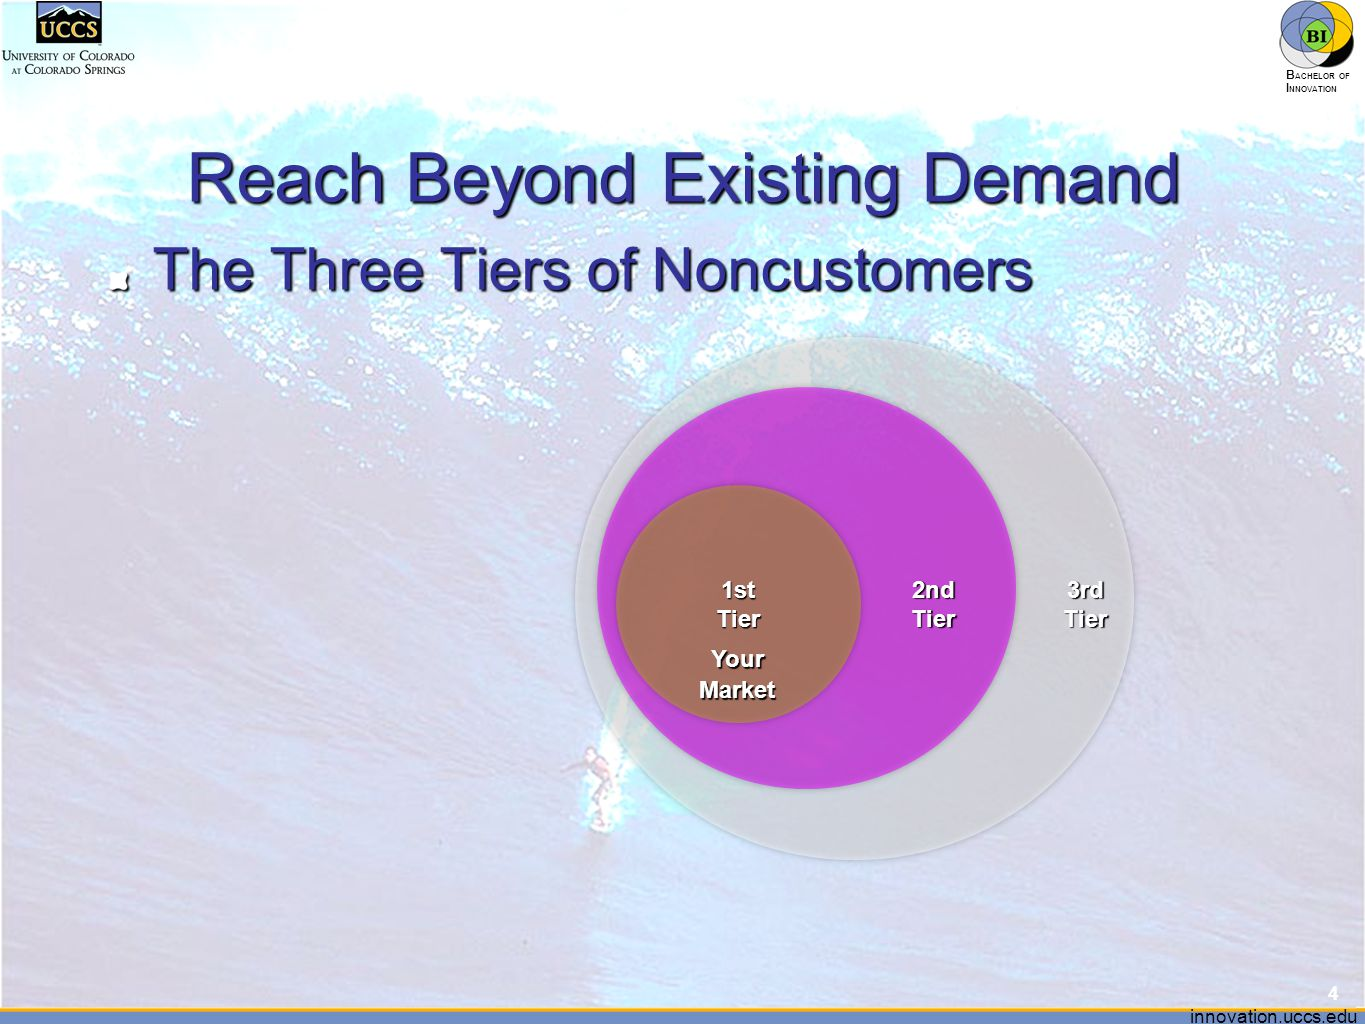 innovation.uccs.edu B ACHELOR OF I NNOVATION ™ Reach Beyond Existing Demand The Three Tiers of Noncustomers 4 1stTier 3rdTier2ndTier YourMarket